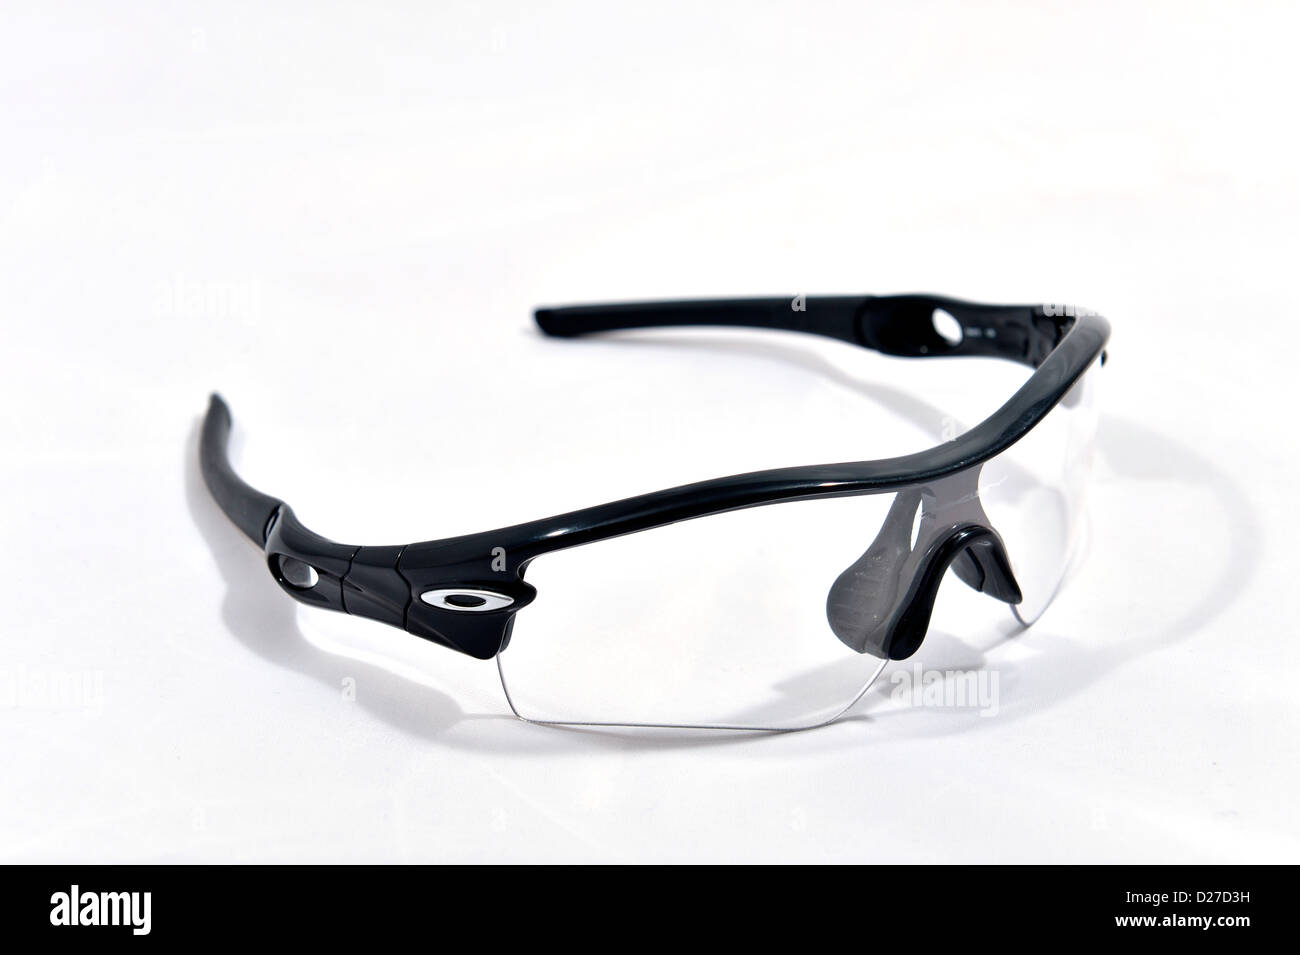 oakley sports glasses 0a7z  Oakley Radar Path professional sport glasses Stock Photo